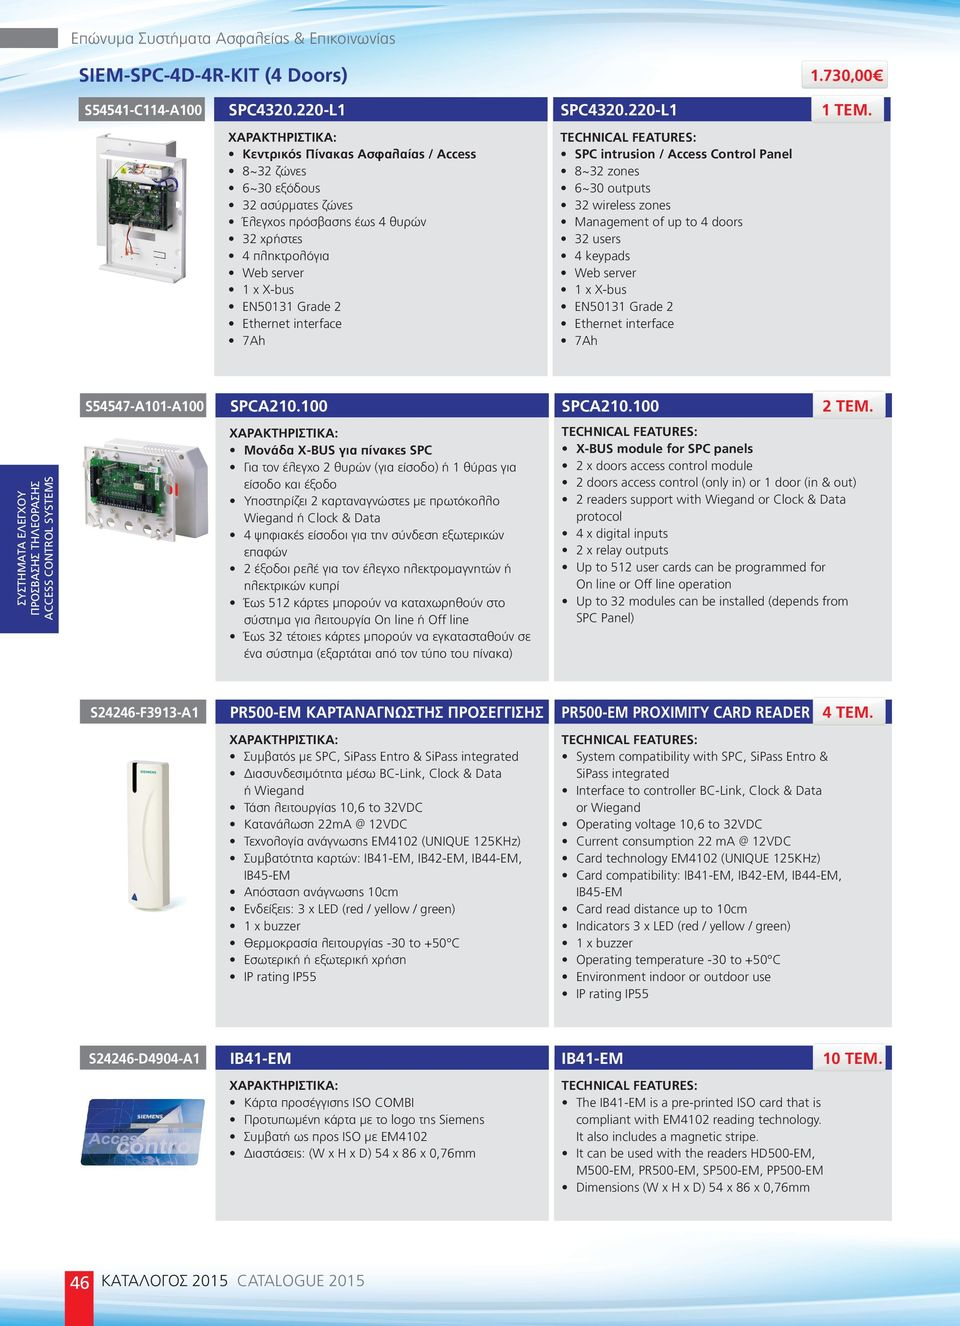 7Ah SPC intrusion / Access Control Panel 8~32 zones 6~30 outputs 32 wireless zones Management of up to 4 doors 32 users 4 keypads Web server 1 x X-bus EN50131 Grade 2 Ethernet interface 7Ah